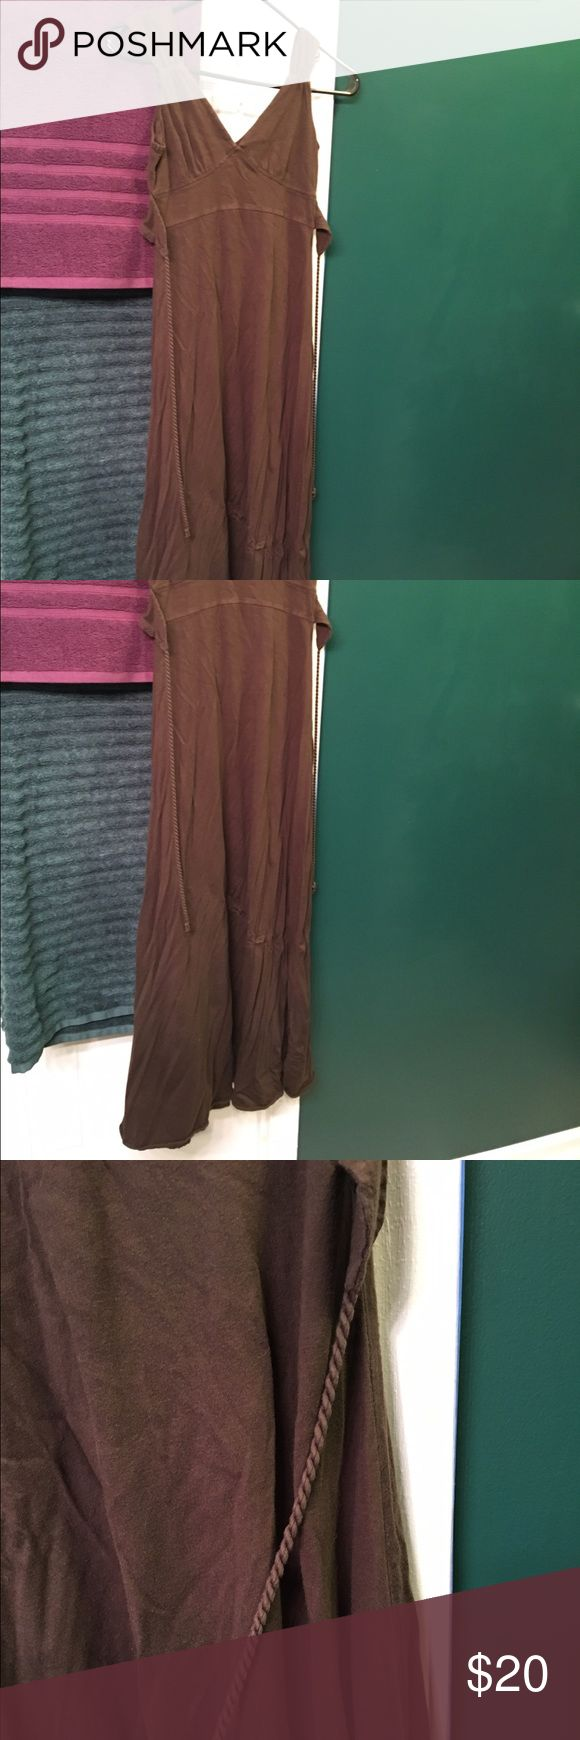 Sleeveless brown maxi dress Tie back for ideal fit Dresses Maxi